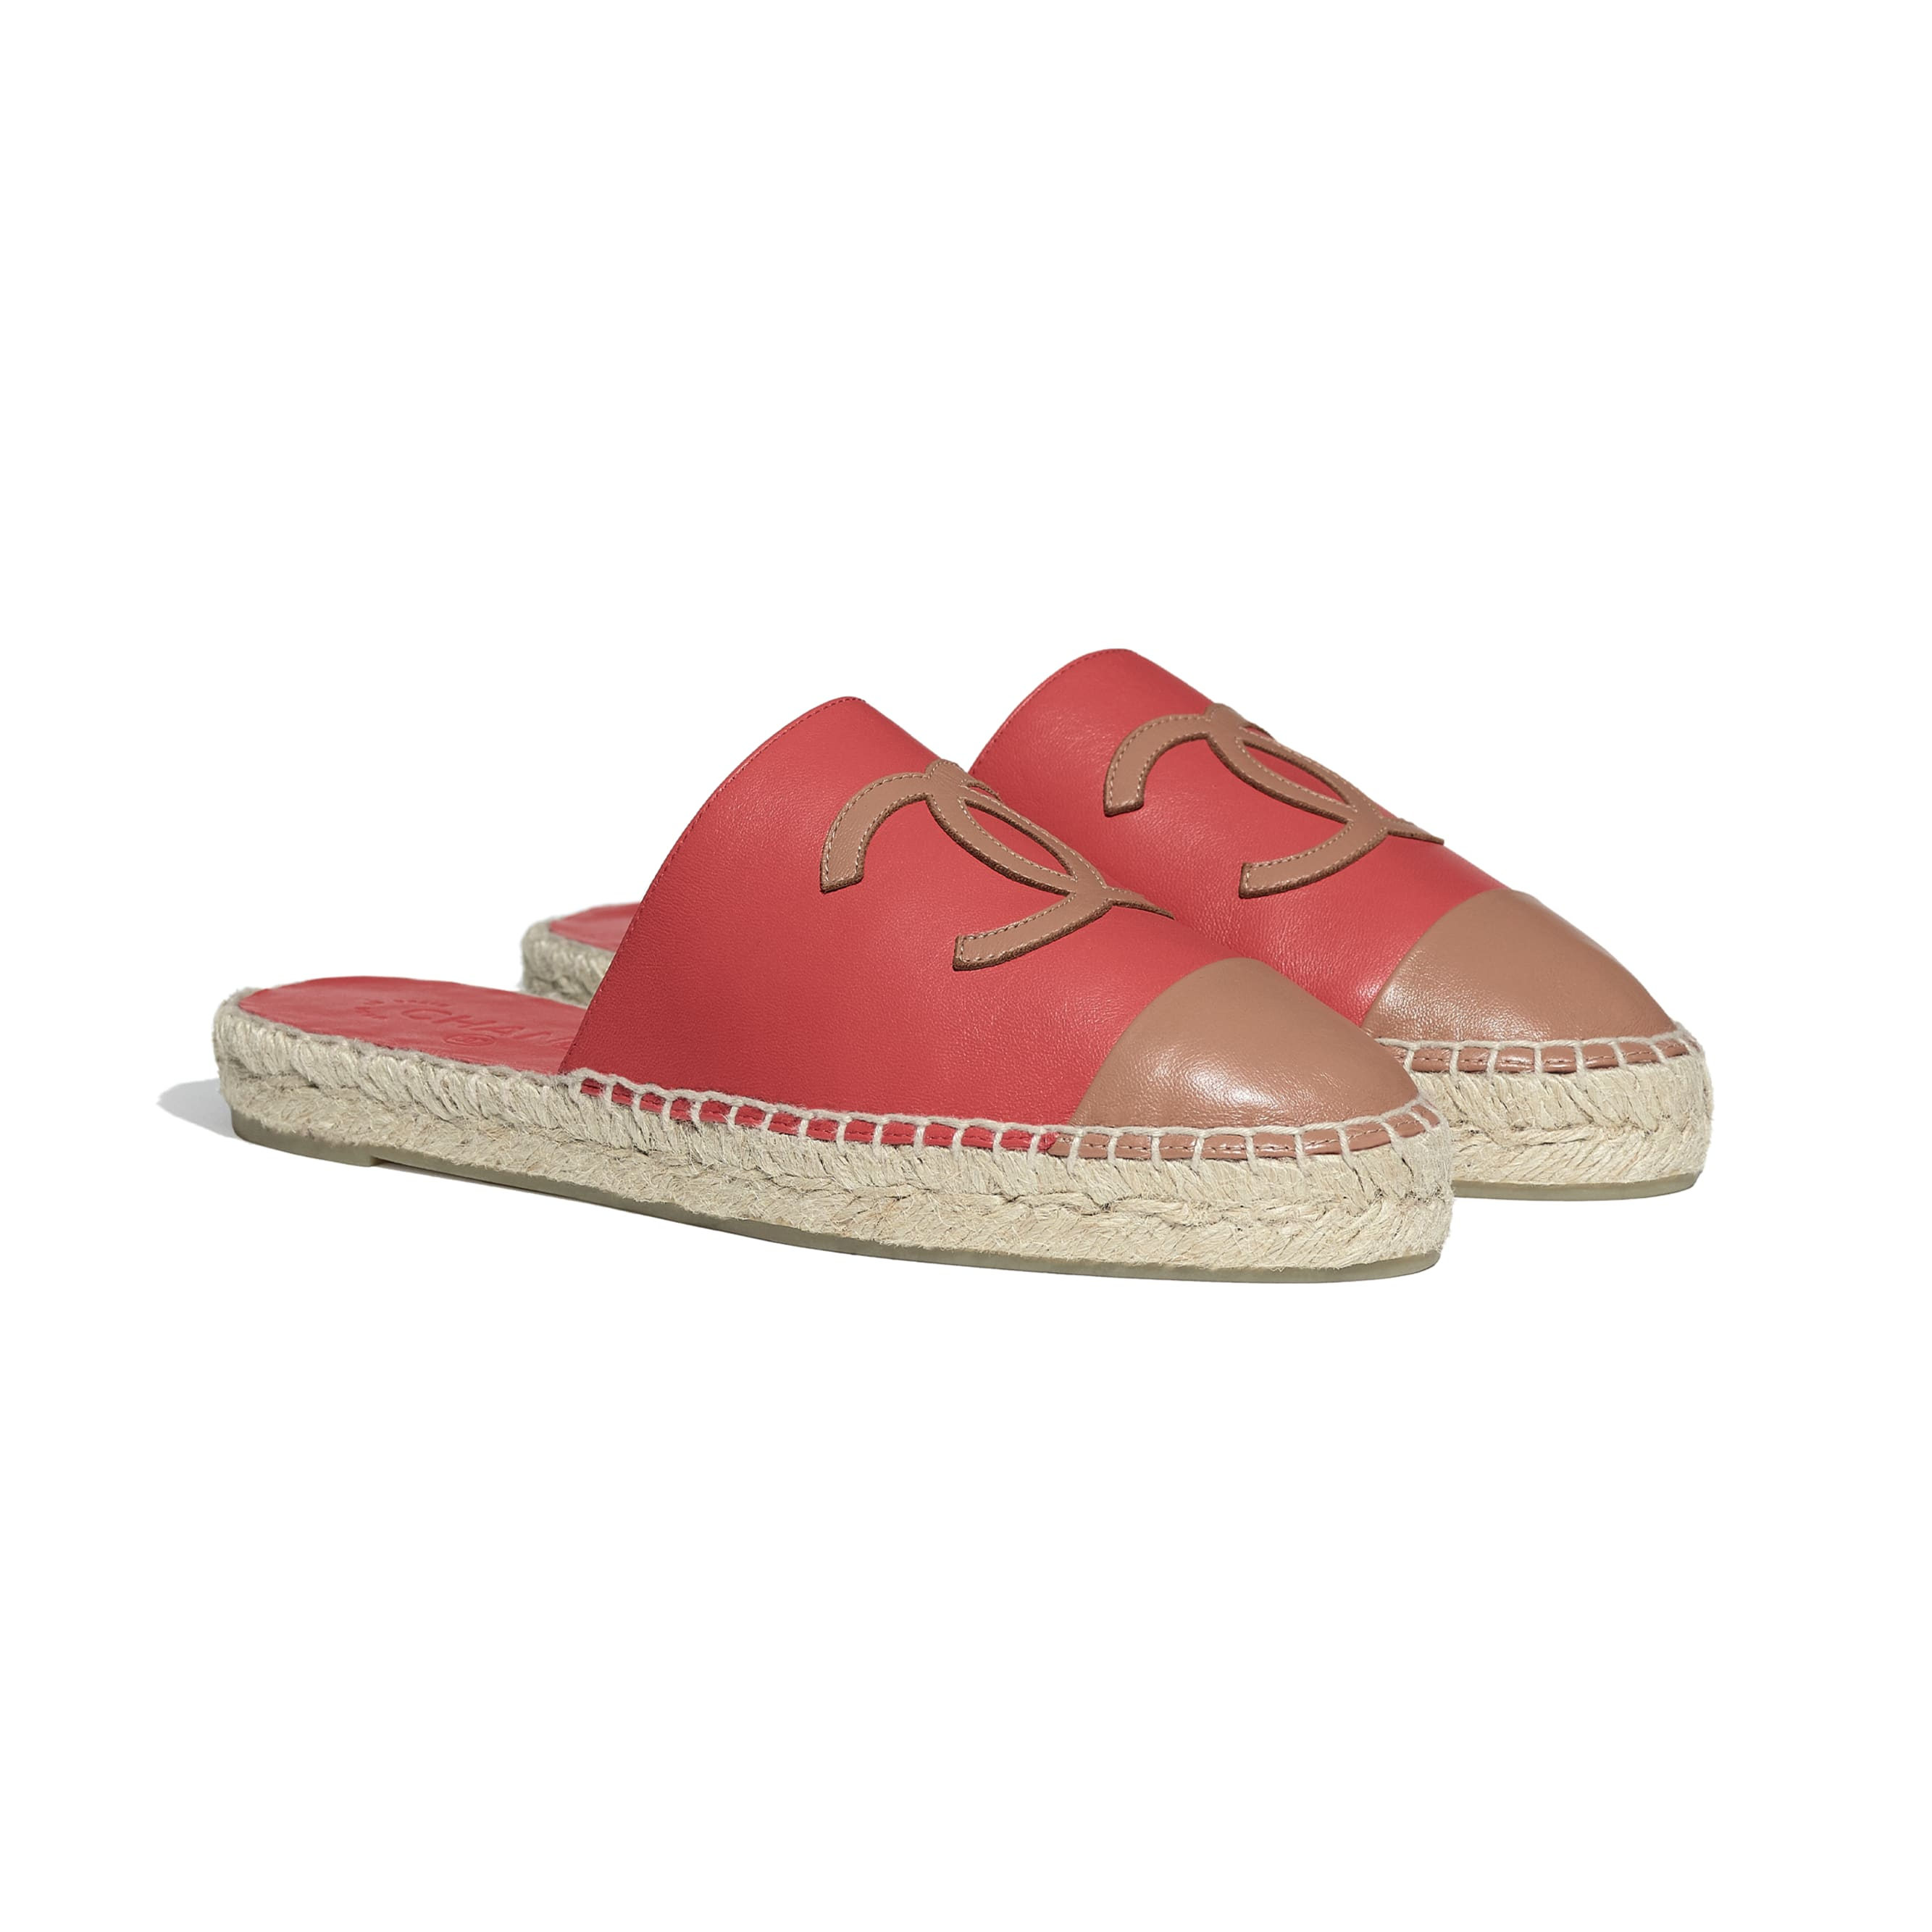 Espadrilles - Red & Brown - Lambskin - CHANEL - Alternative view - see standard sized version